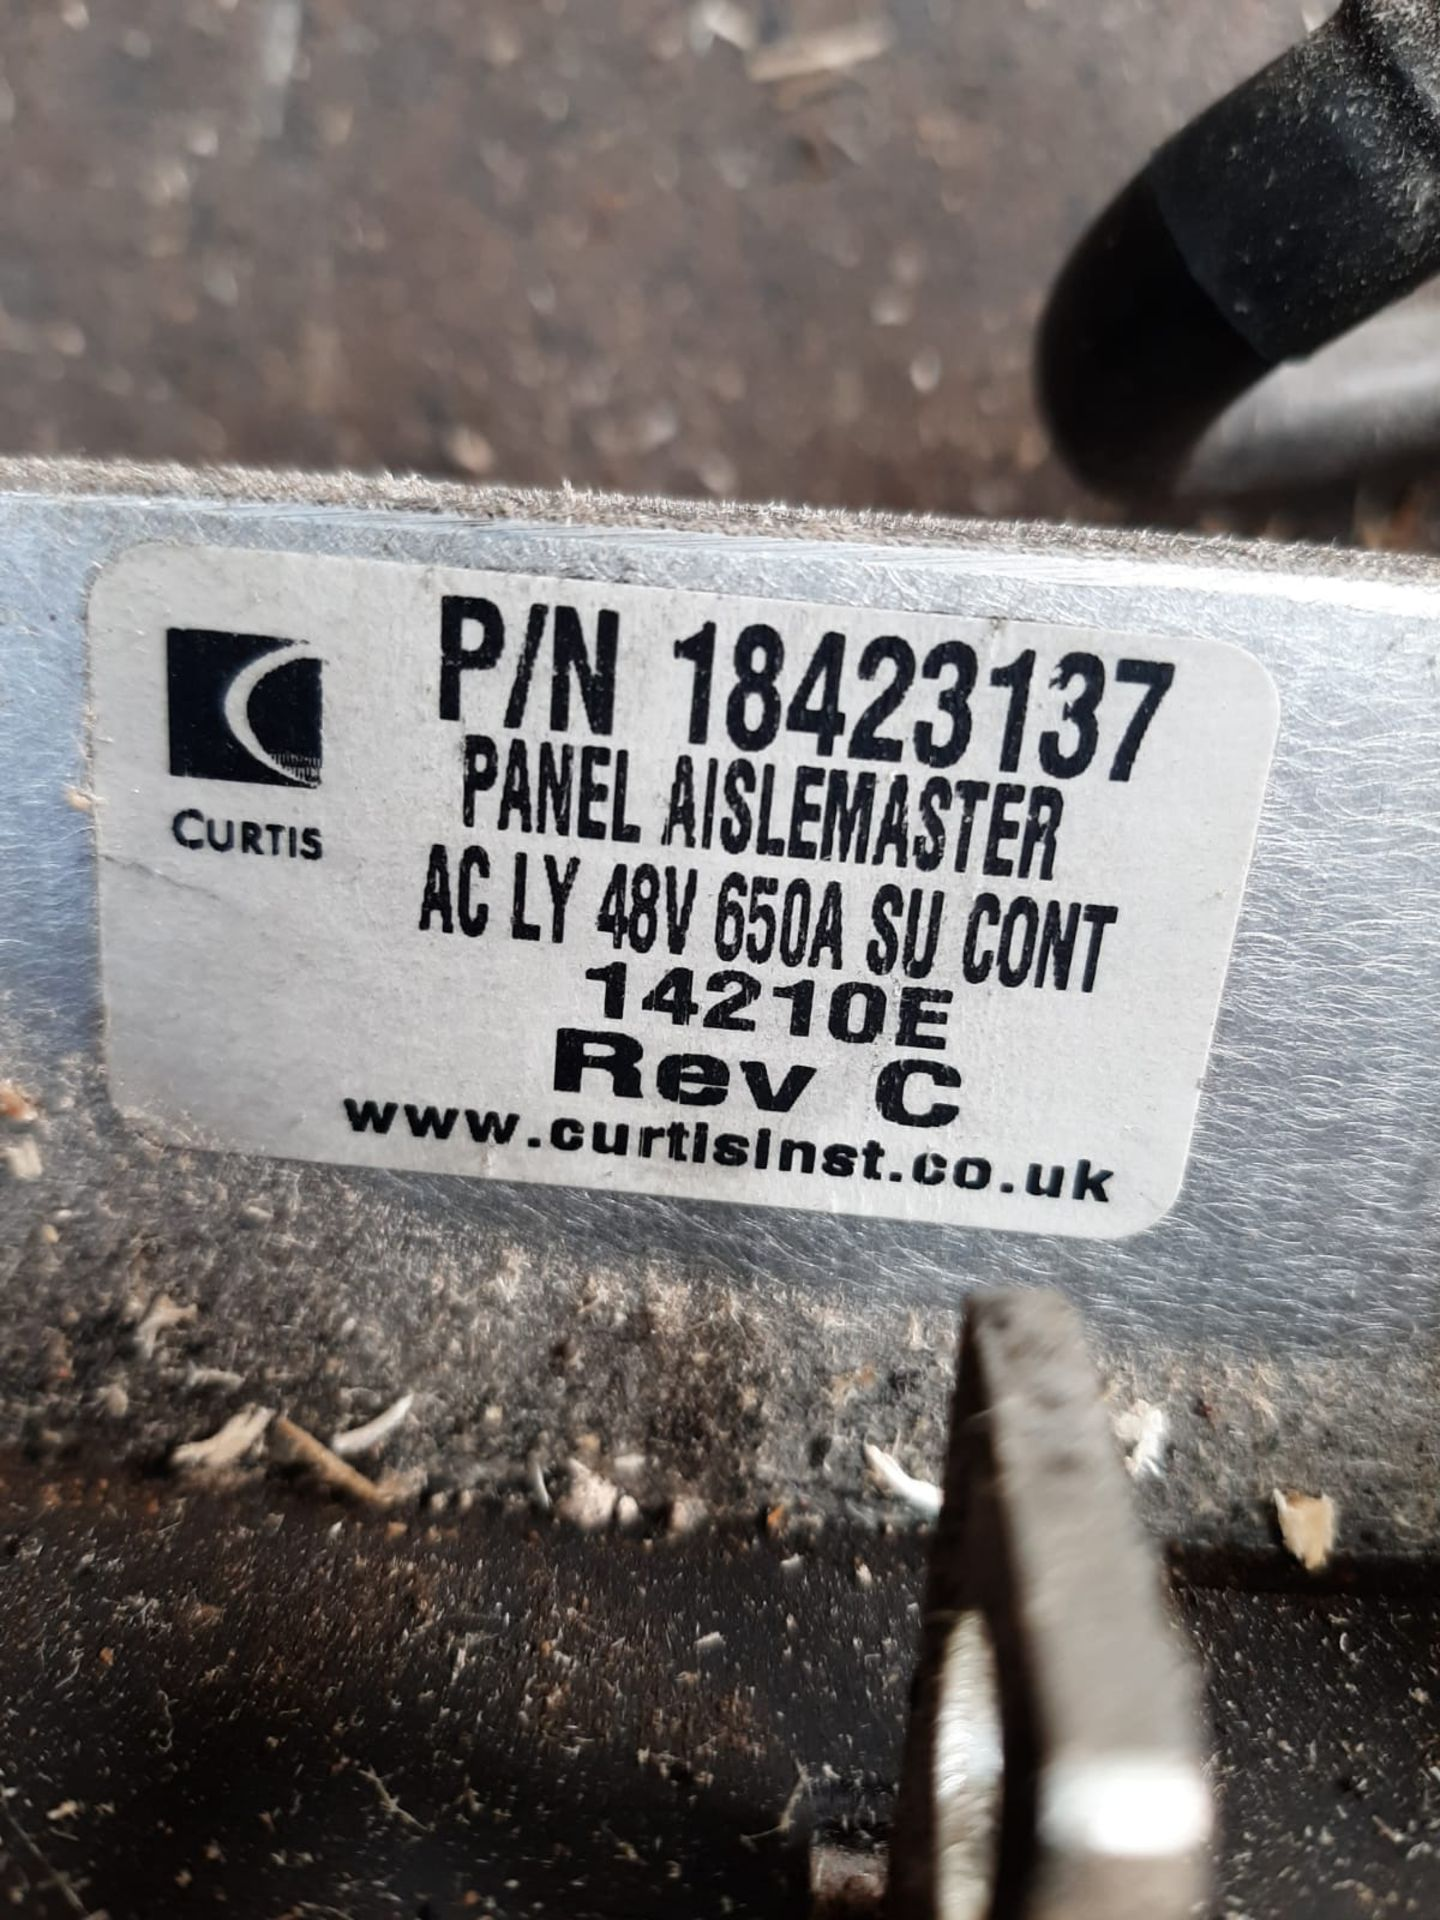 Lot 151 - AISLE MASTER WH20E 2014 ELECTRIC FORK TRUCK POWER BOARD CURTIS BOARD WITH INVERTER *NO VAT*